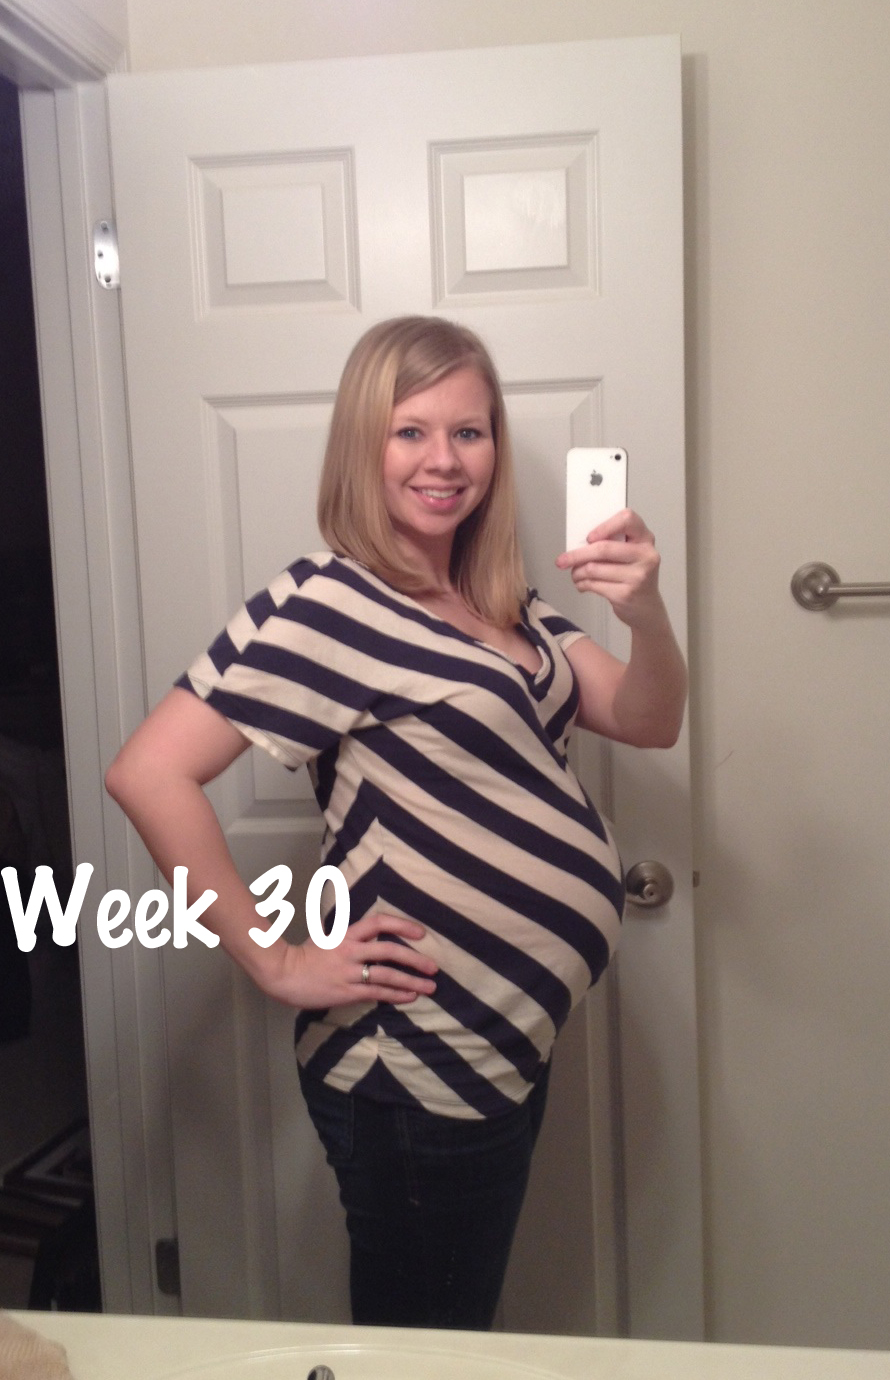 The expert, 30 week pregnant belly know, that